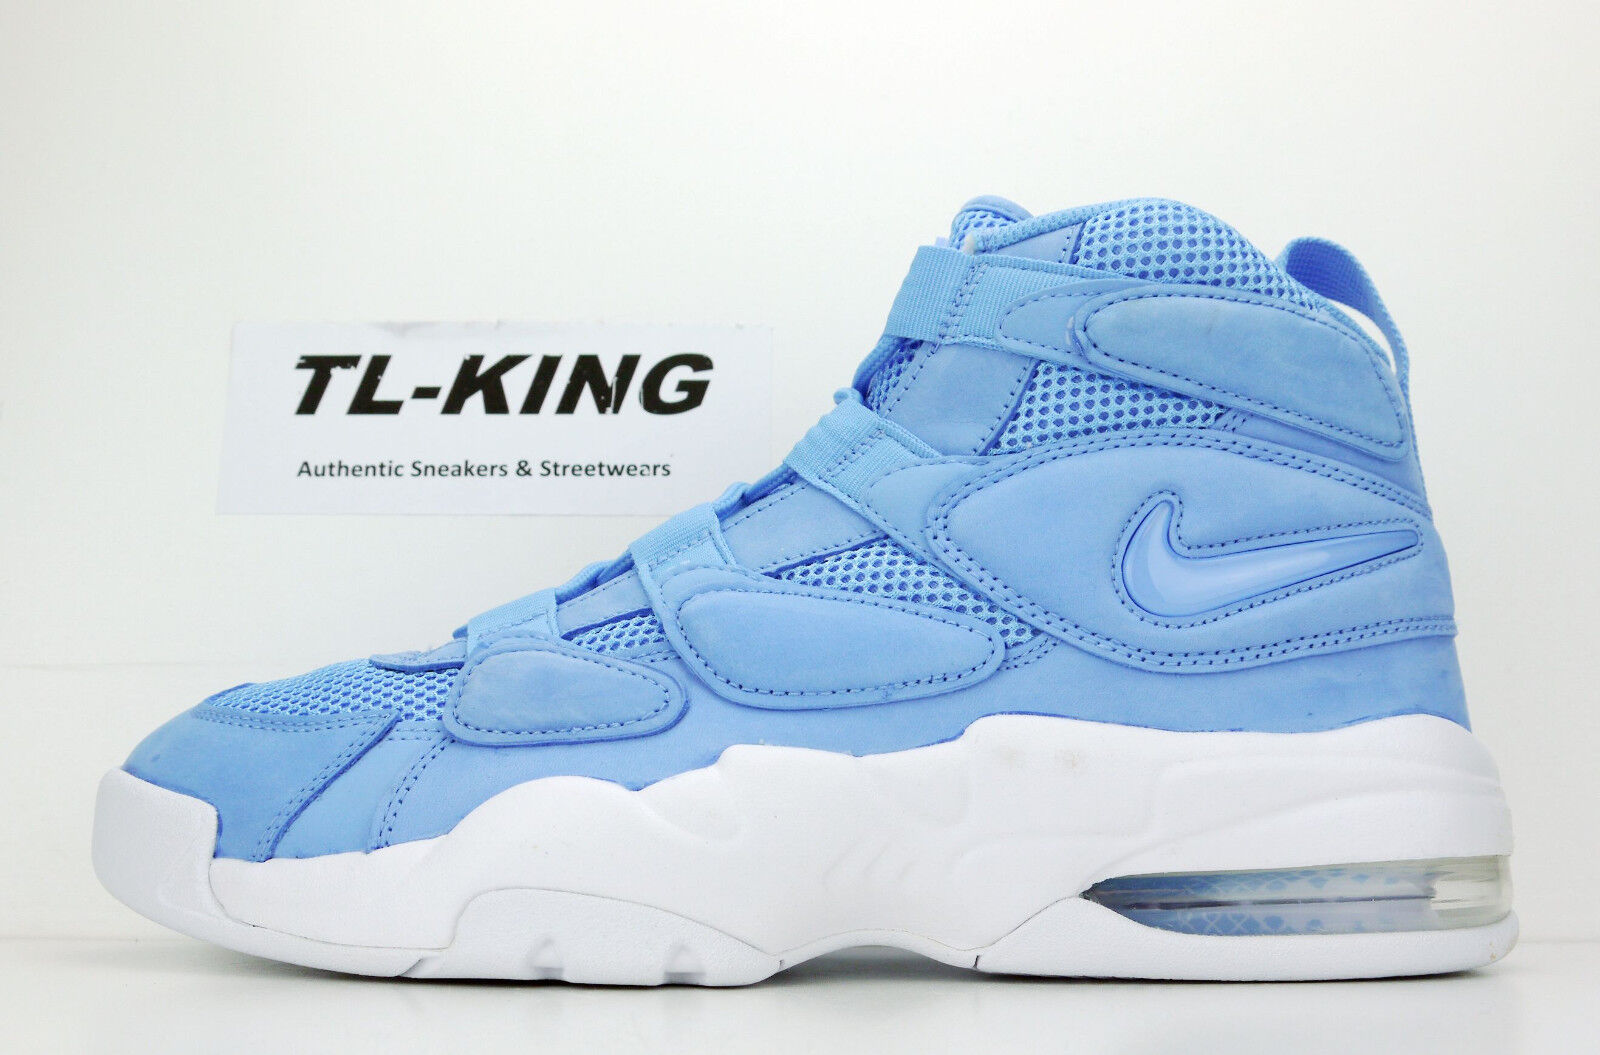 Nike Air Max 2 Uptempo '94 AS QS University Blue White 922931 400 Msrp Price reduction Cheap women's shoes women's shoes